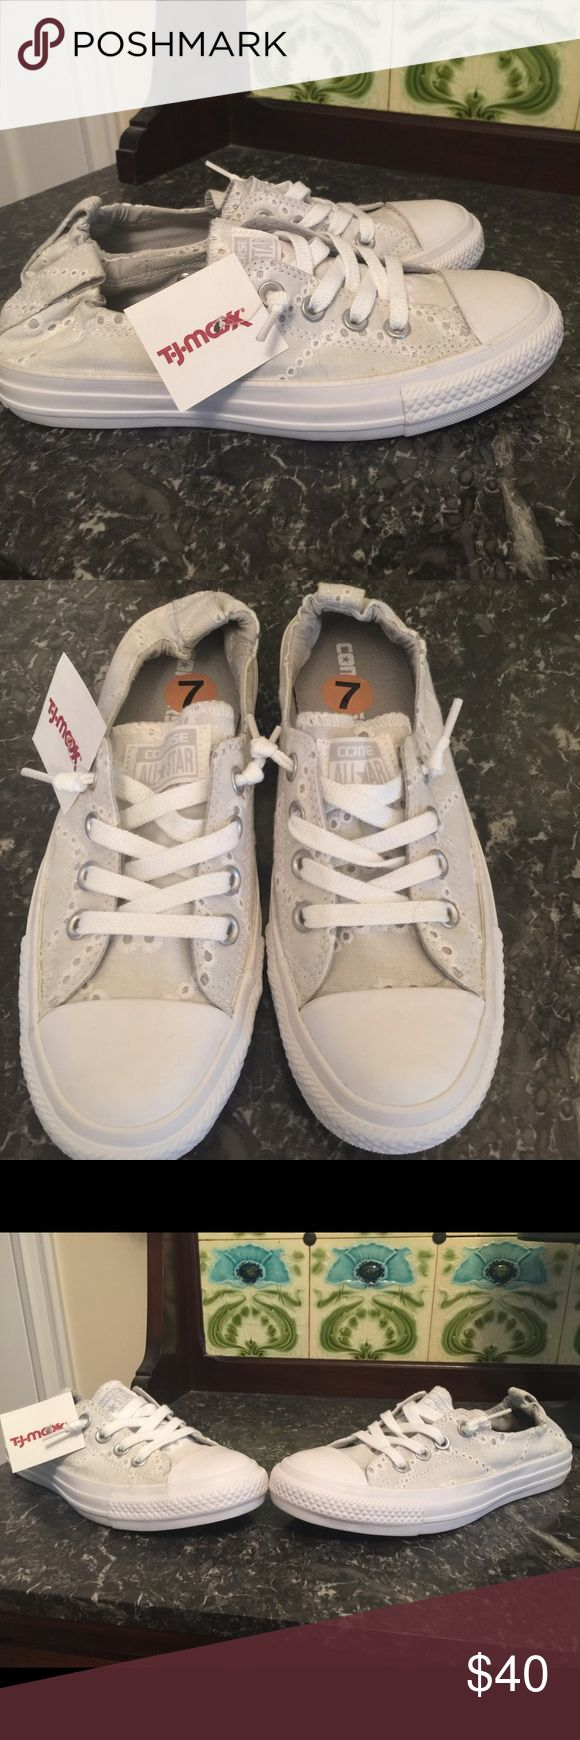 NWT Ladies Converse White Eyelet Sneakers Solid white, including the Converse tag on the back, eyelet sneakers.  Stretchy back for easy slip on and off.  Laces up the front.  Absolutely darling.  NWT. Converse Shoes Athletic Shoes